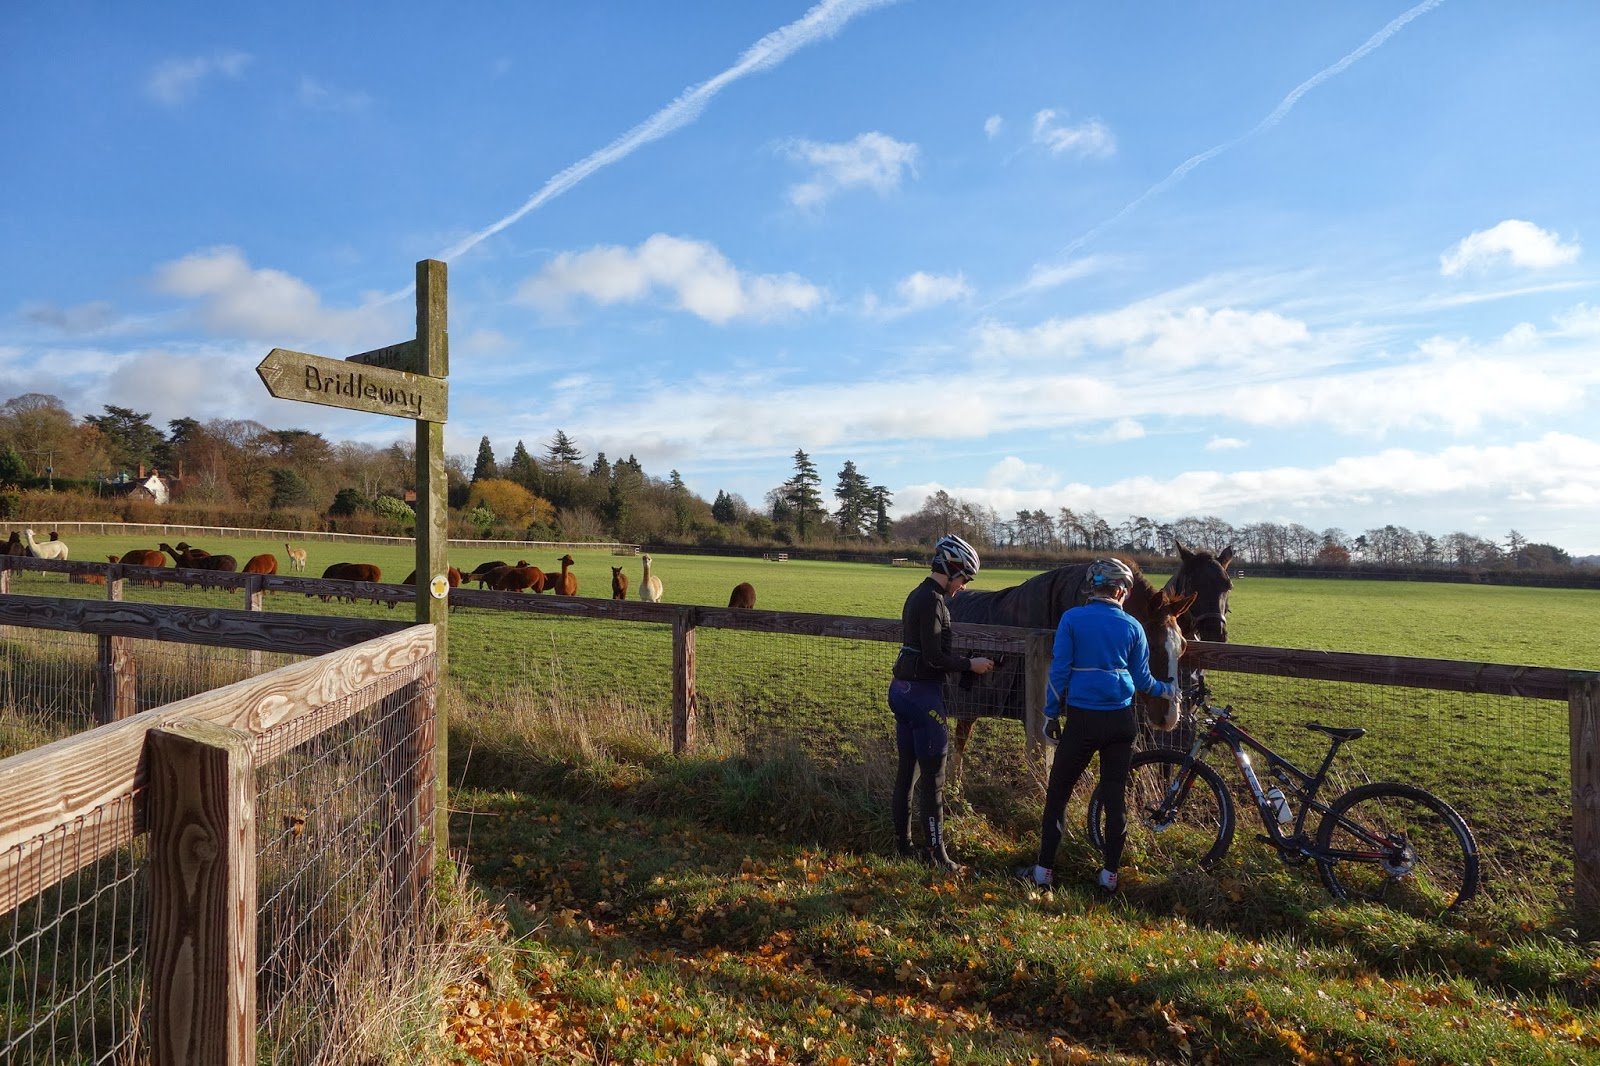 Riding on a bridleway